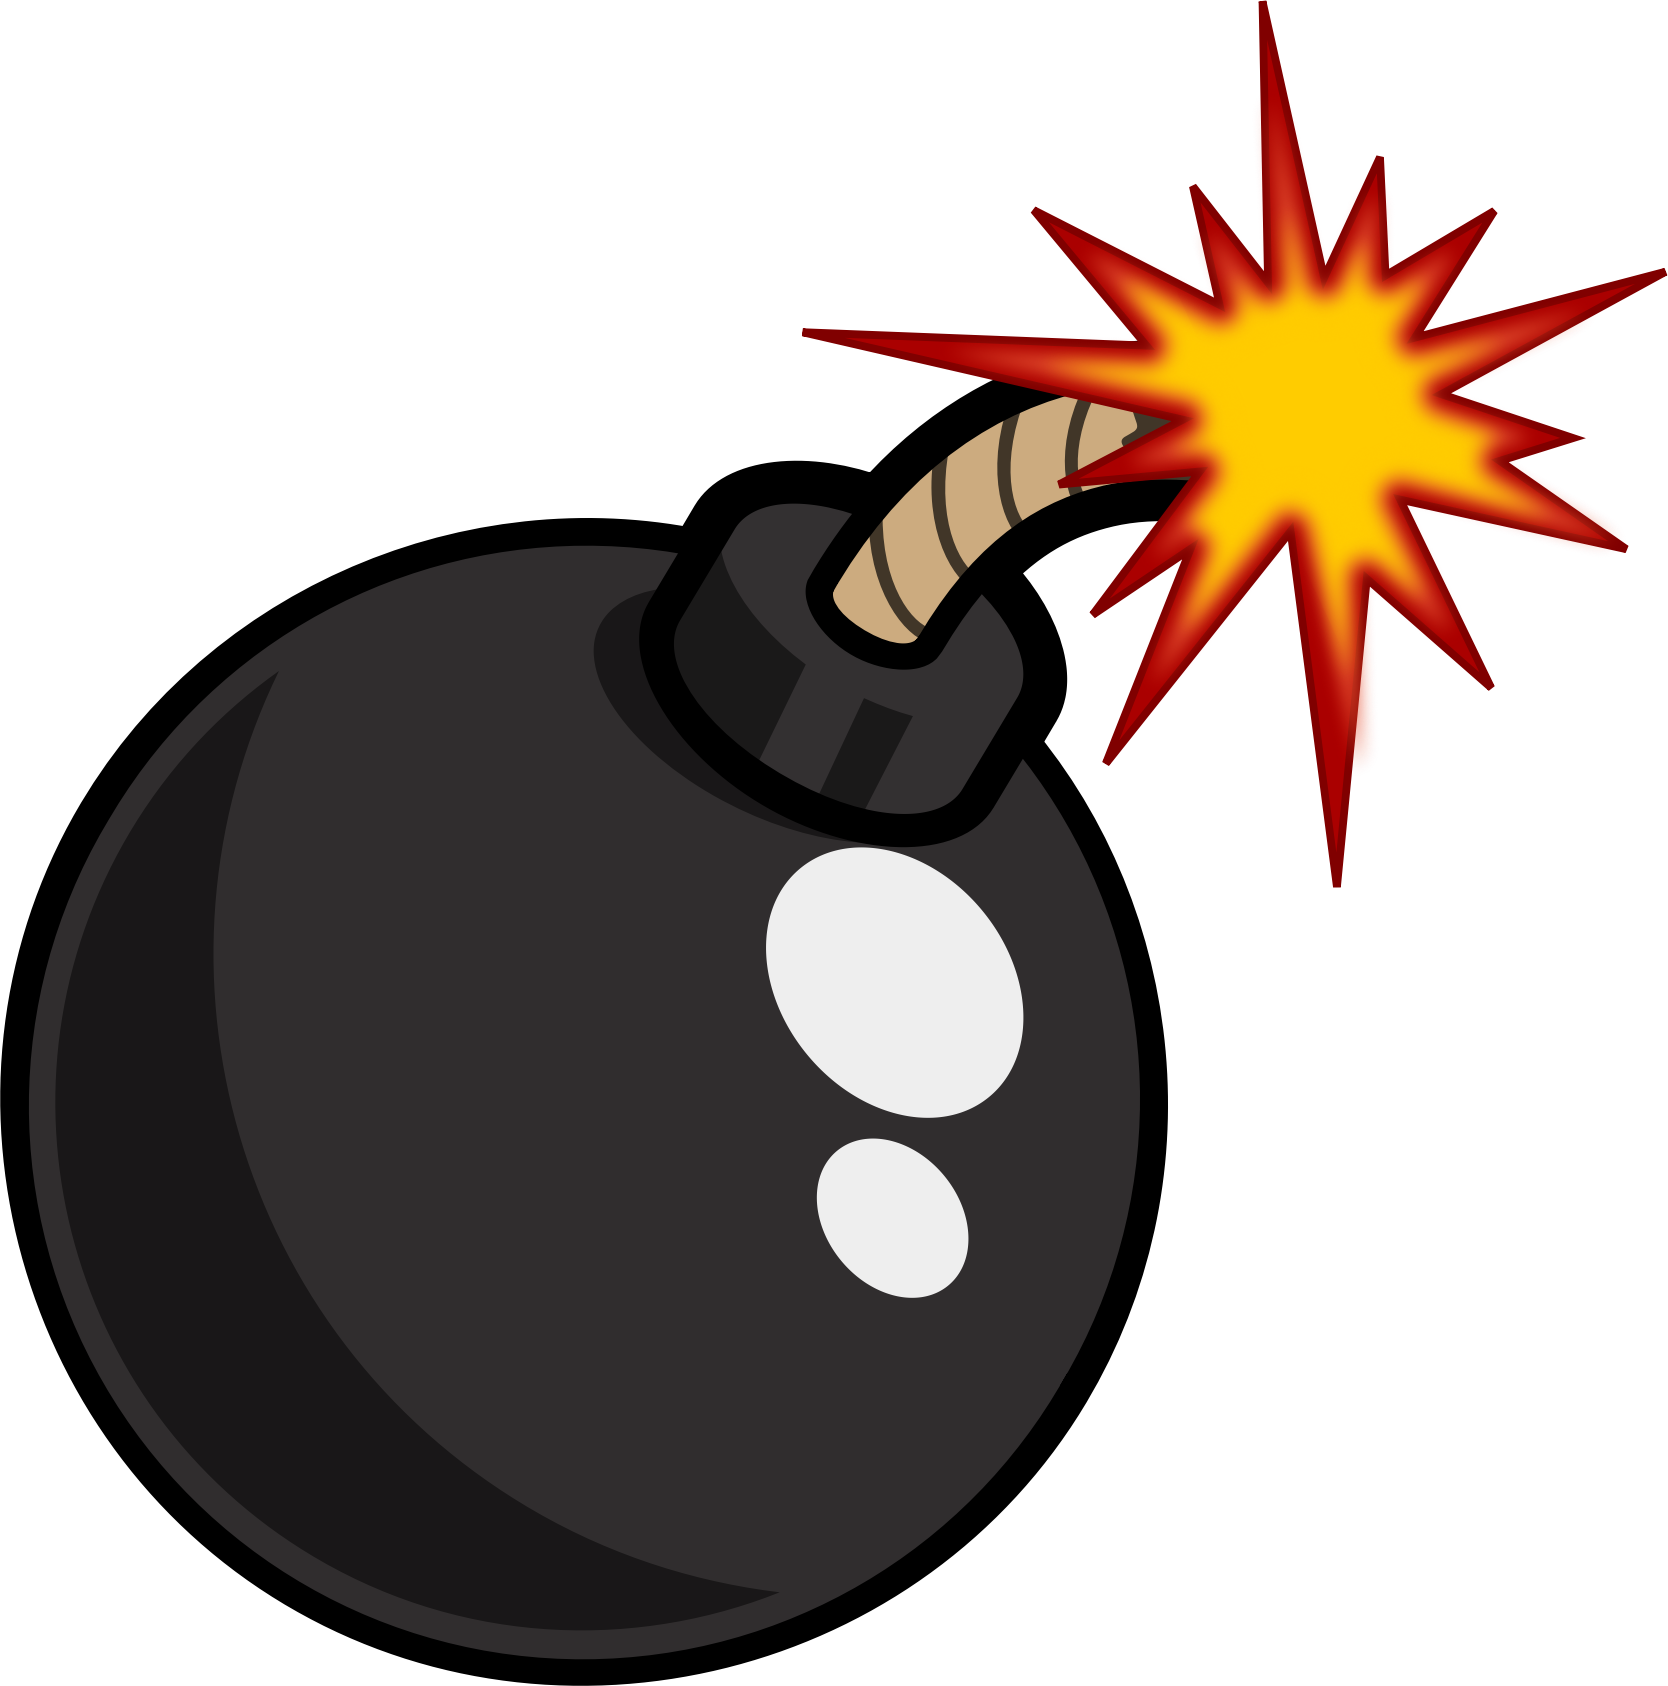 graphic freeuse Black cartoon big image. Bomb clipart